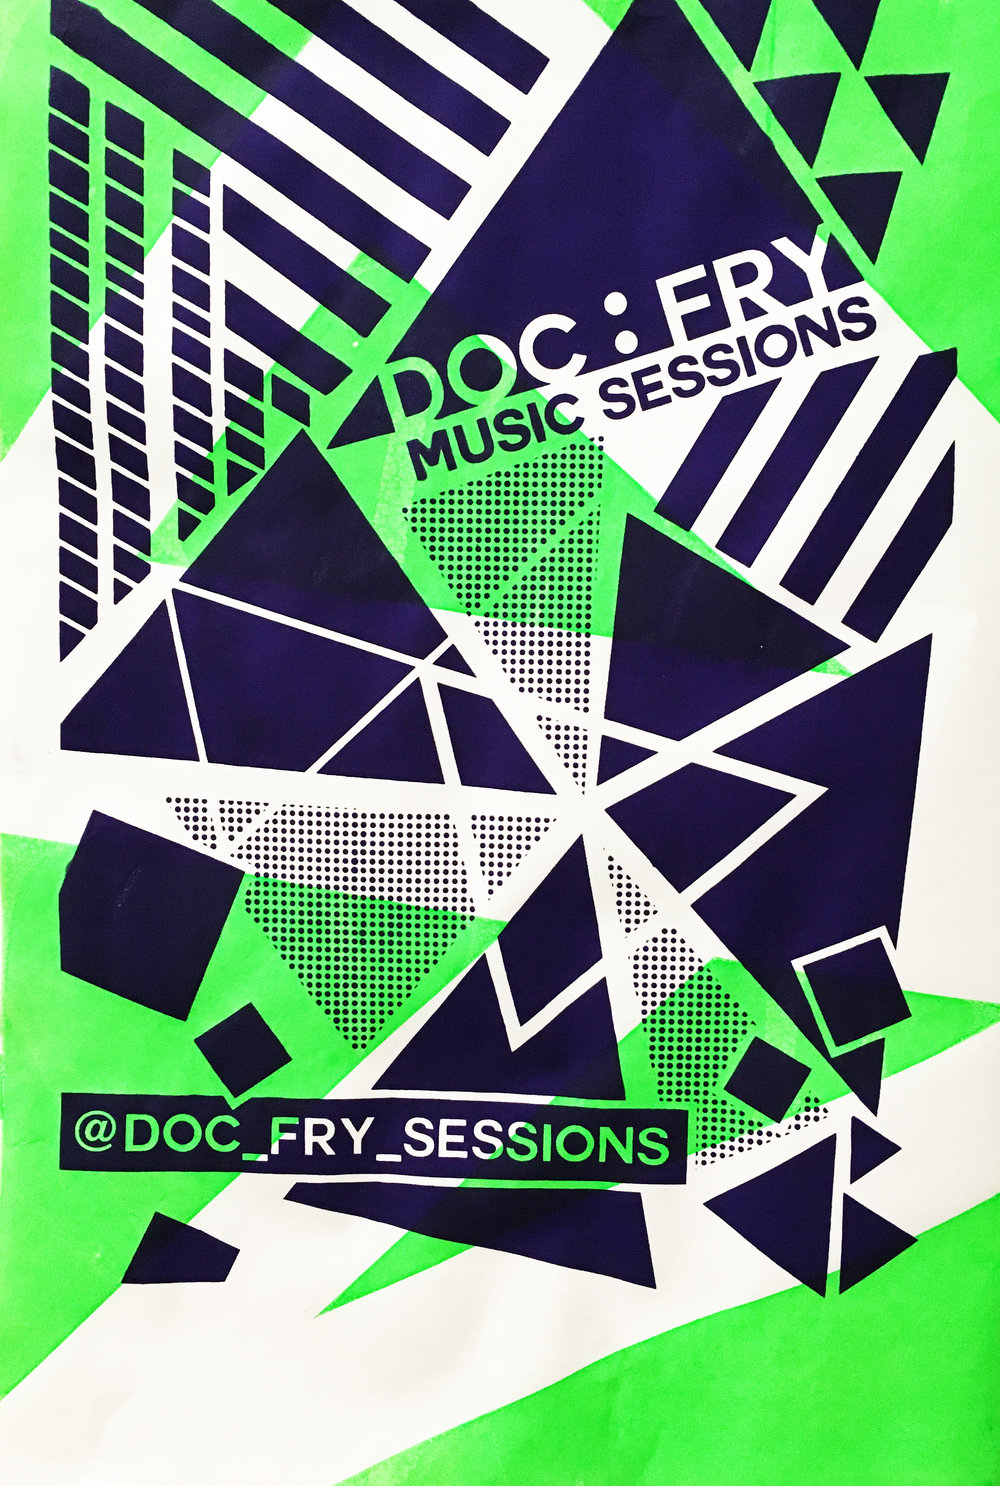 Doc Fry Music Sessions : Promotional Poster